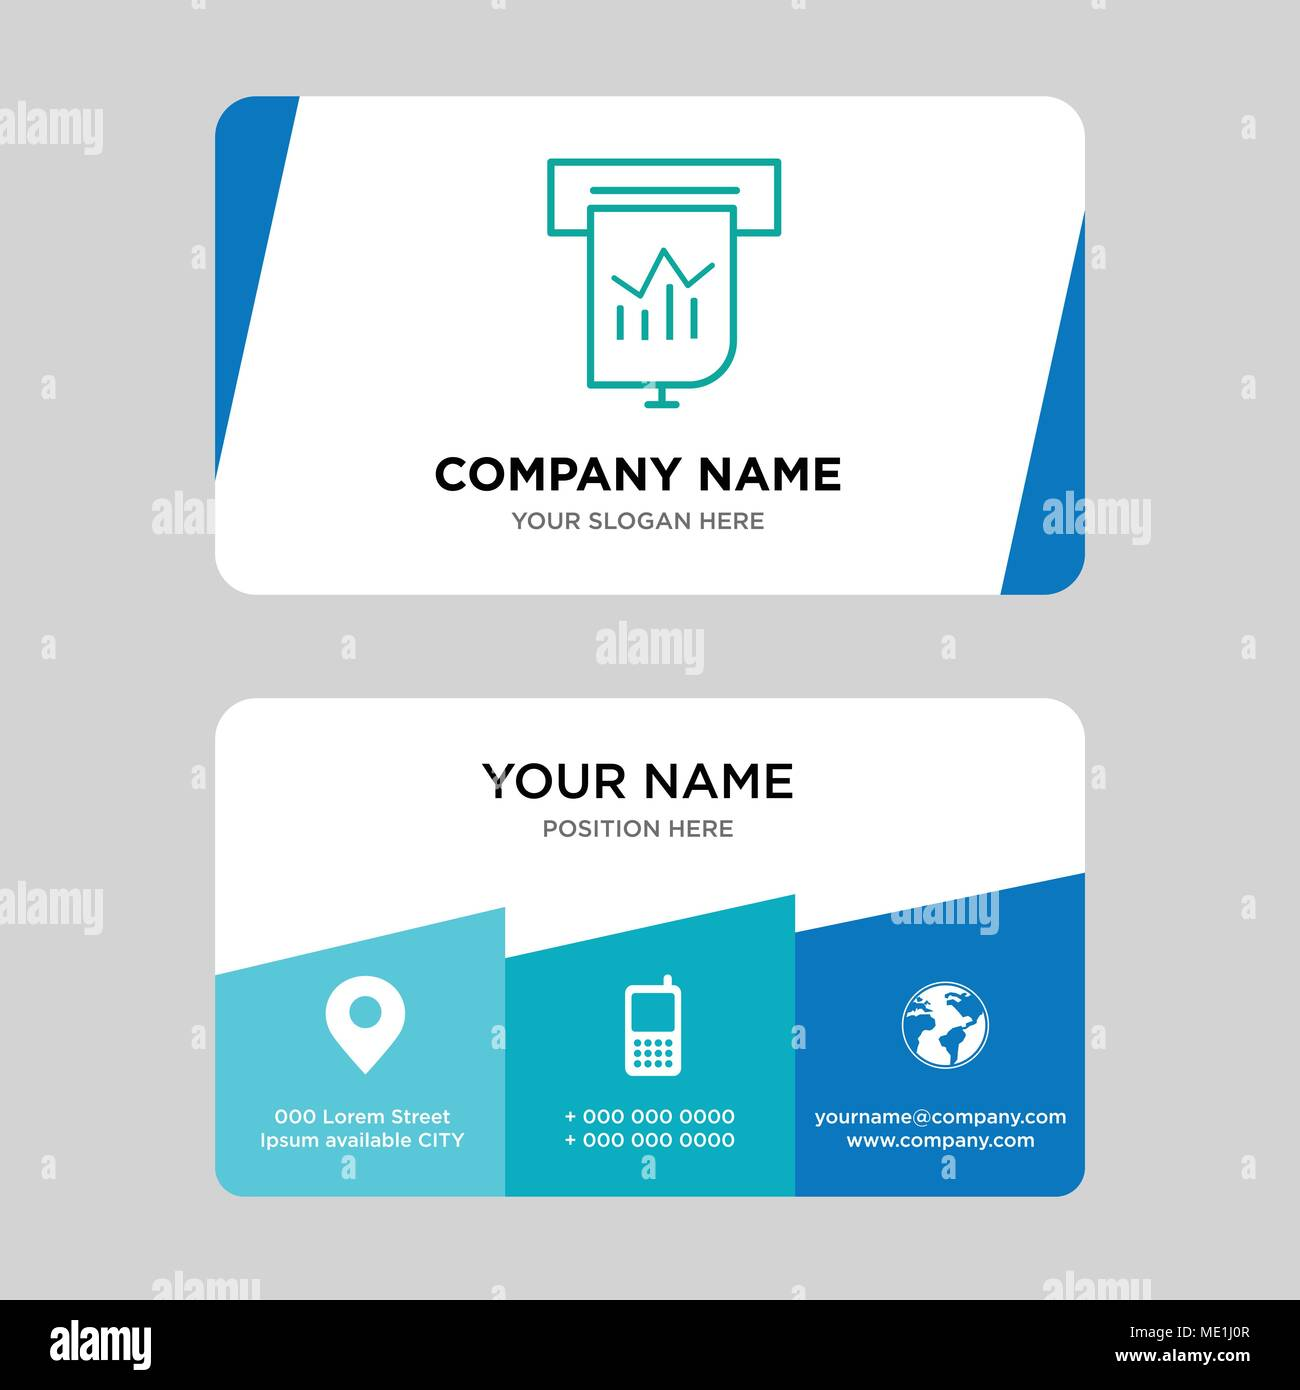 Presentation business card design template, Visiting for your ...